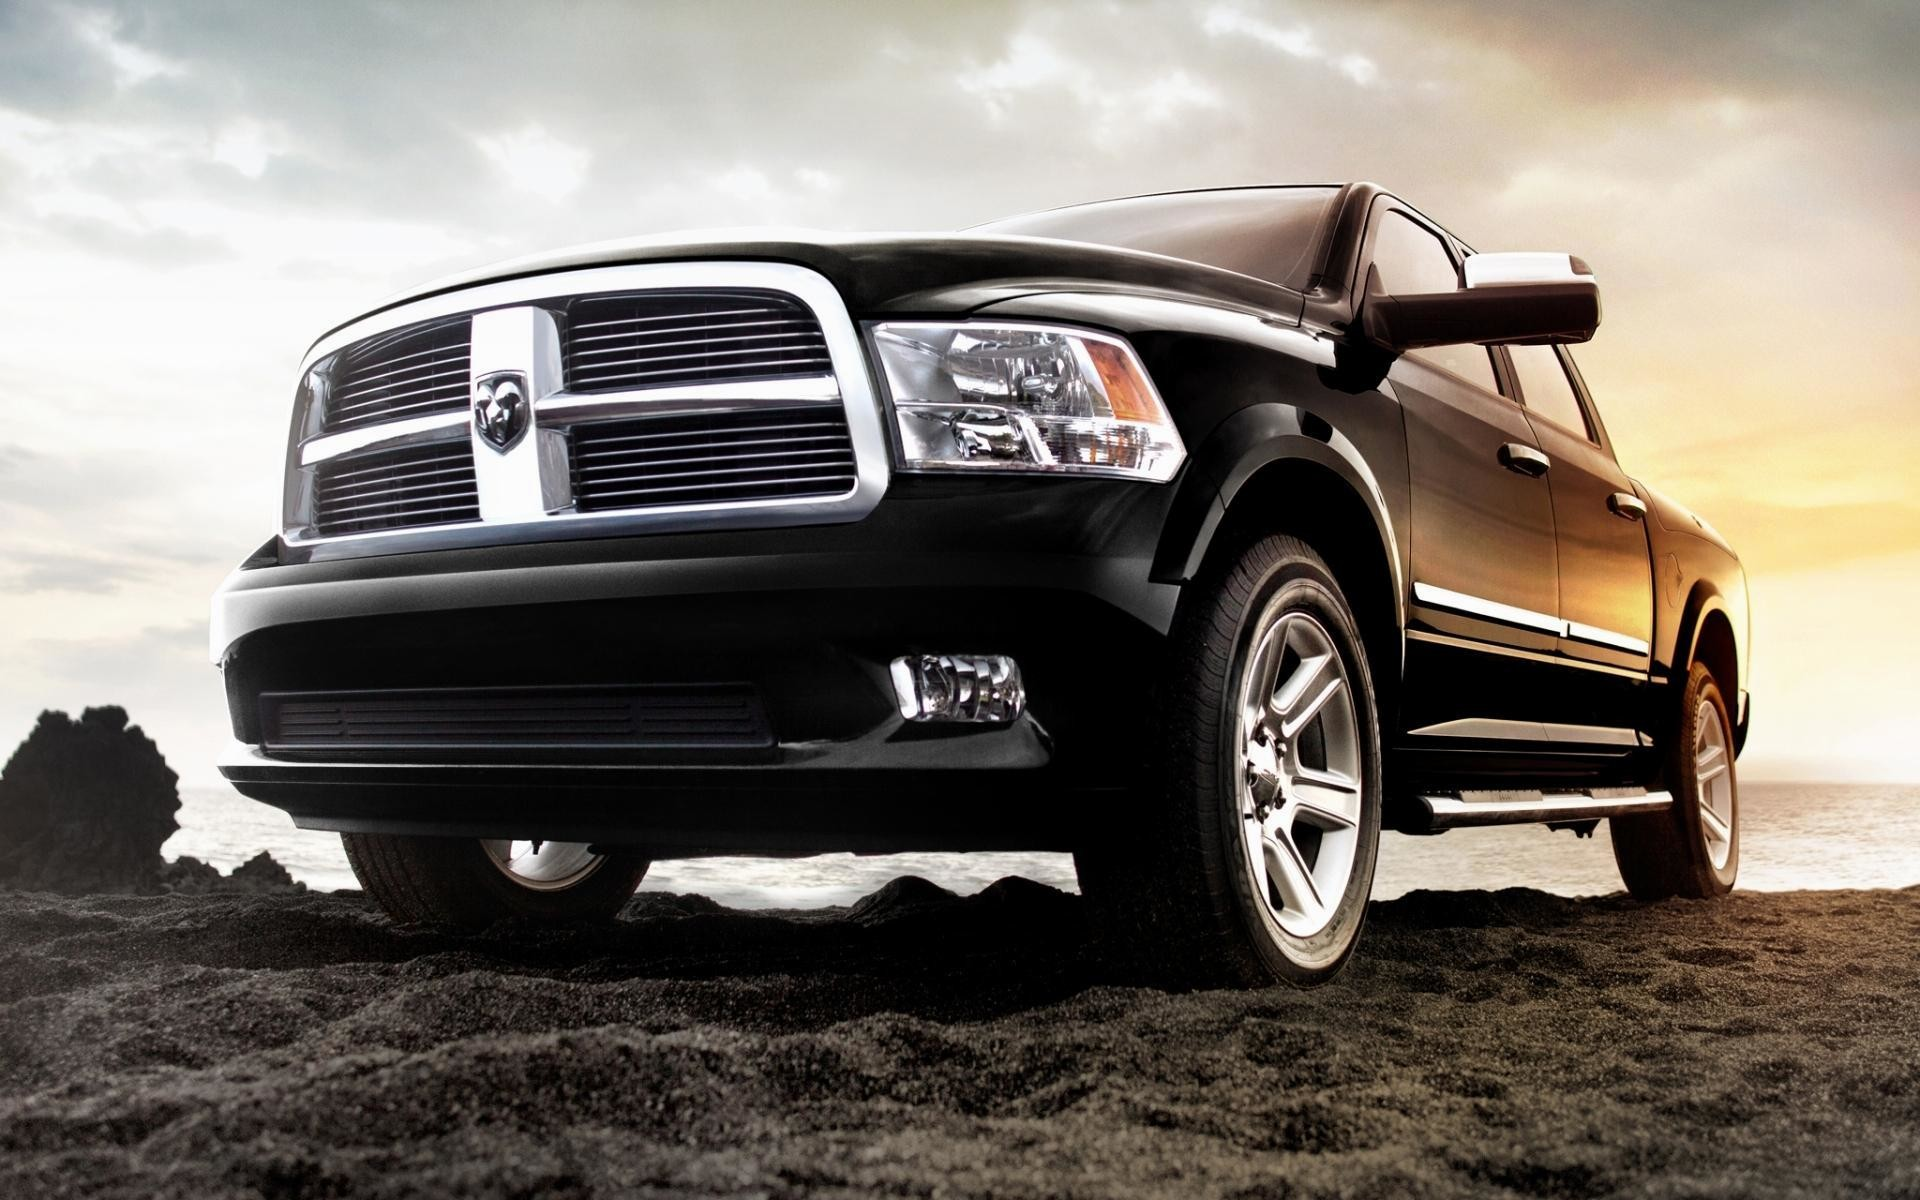 wallpaper.wiki-HD-Dodge-Ram-Backgrounds-PIC-WPB001600